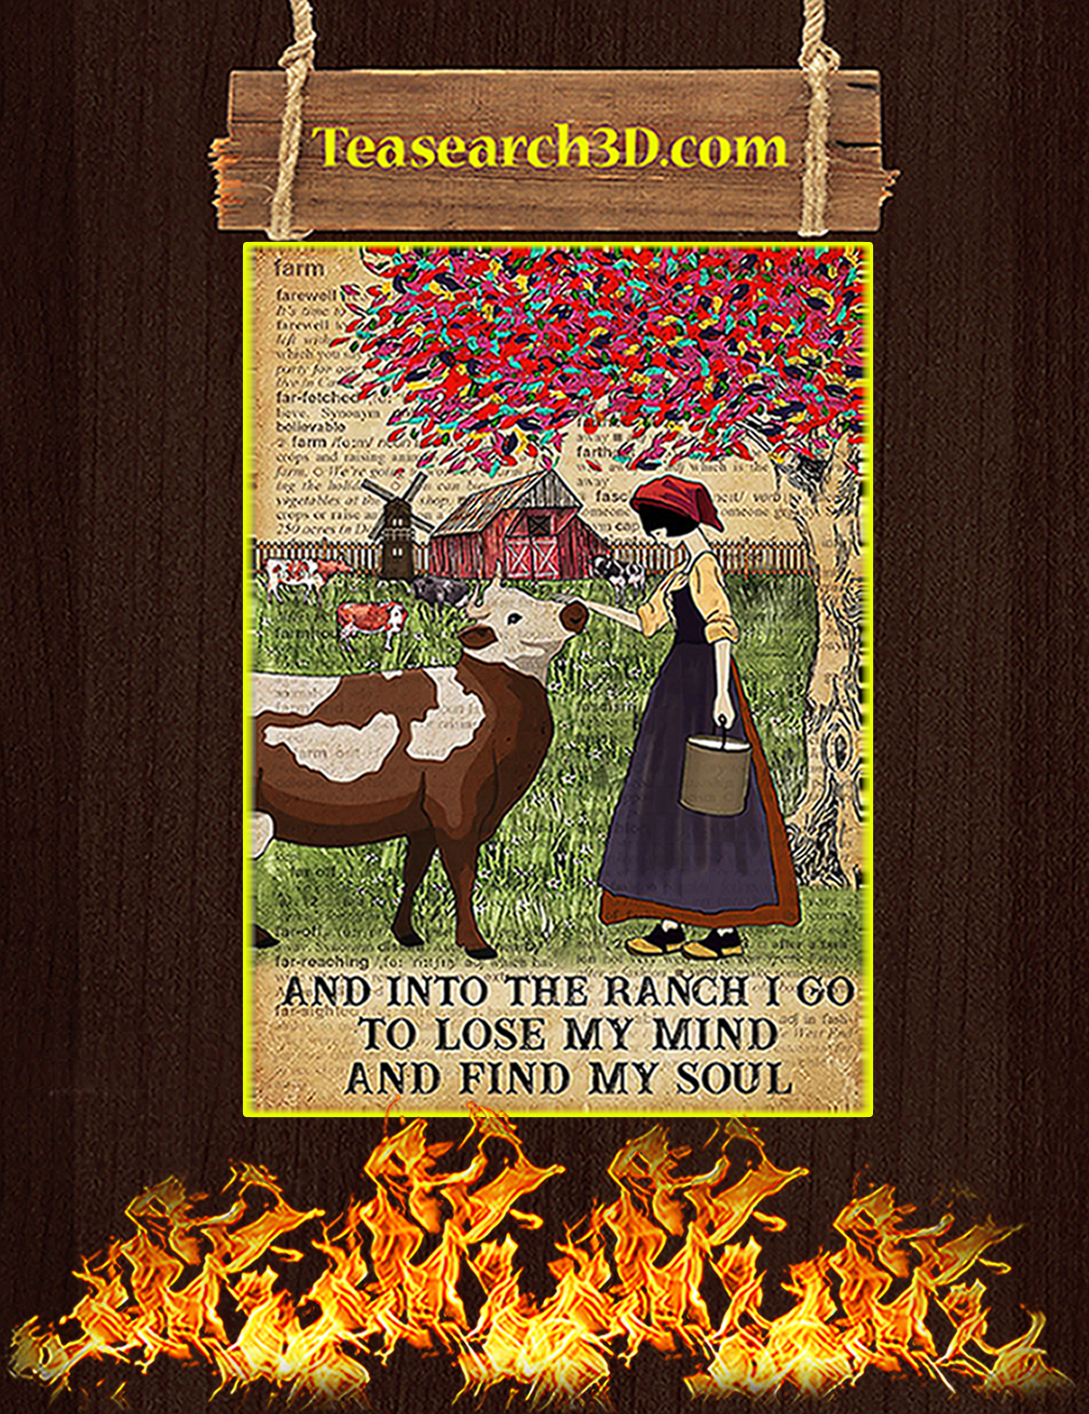 Dictionary cattle farm girl And into the ranch I go to lose my mind and find my soul poster A2